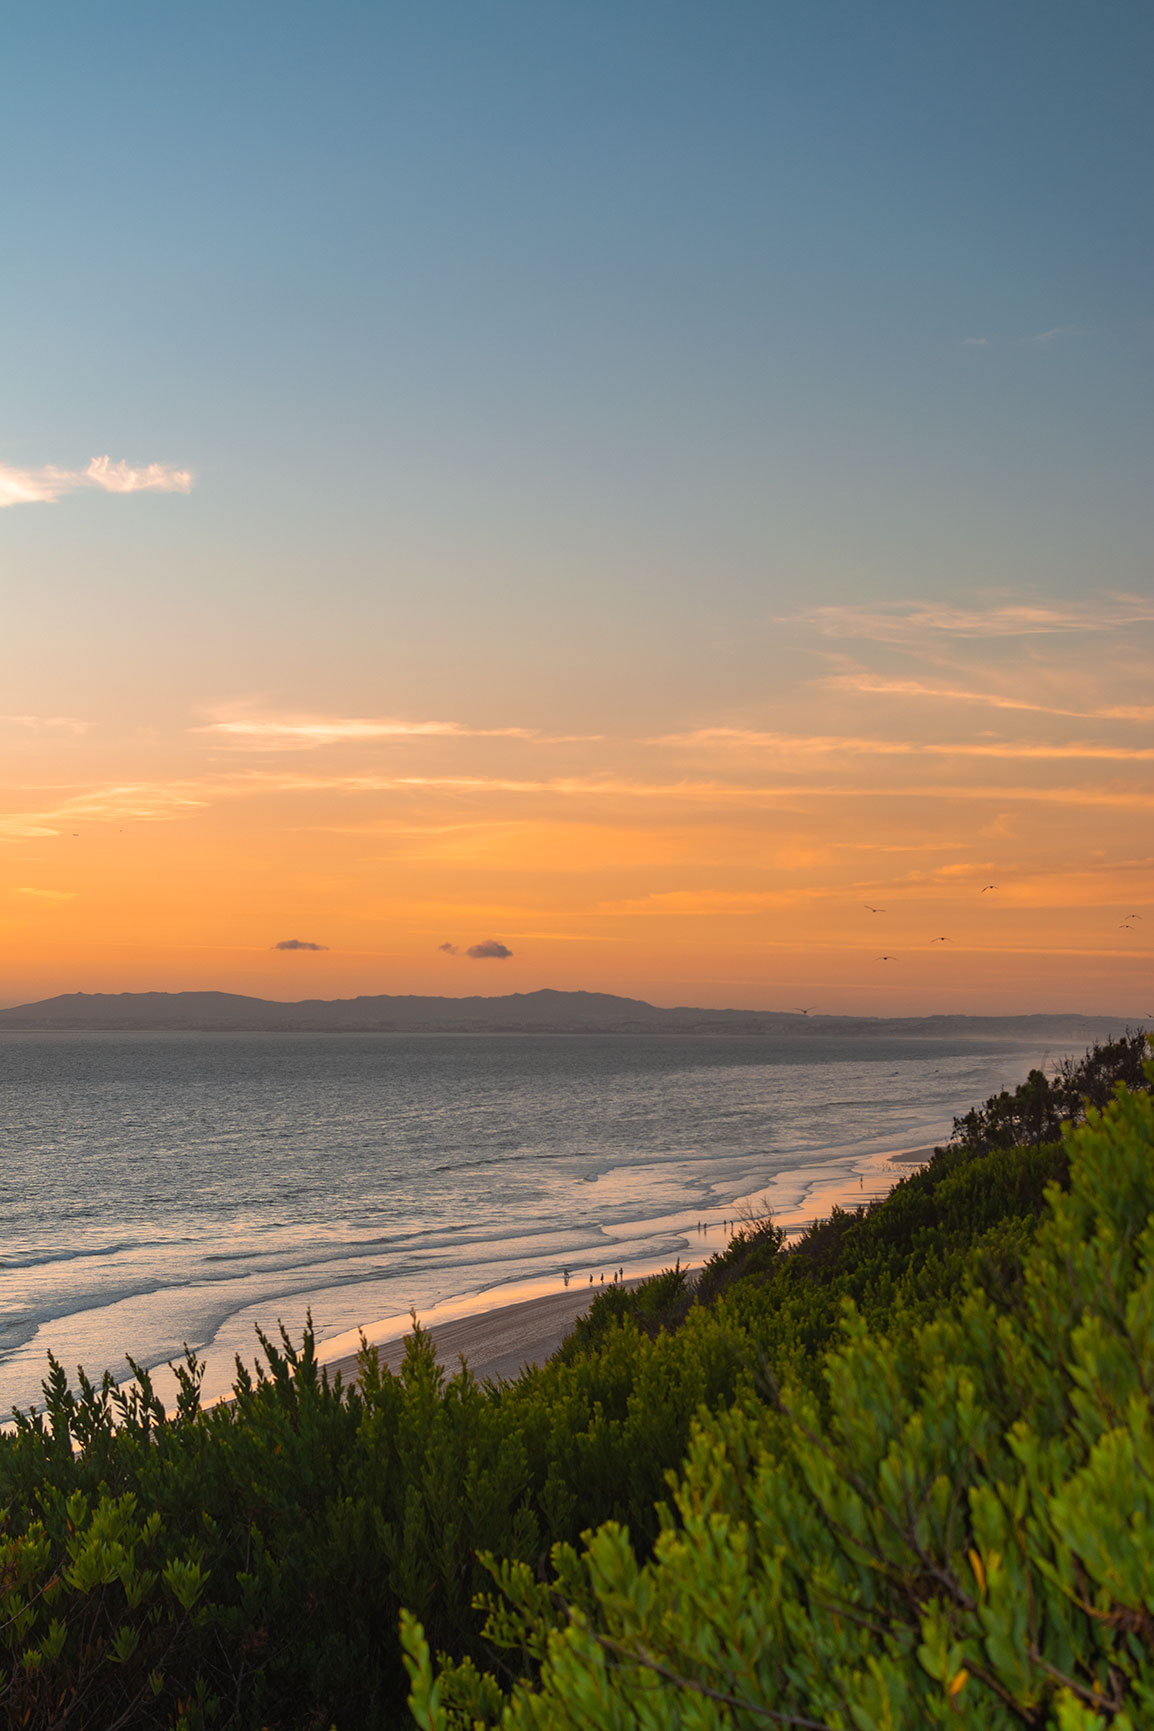 Sunset at Praia da Adiça, near Lisbon: Green vegetation, a calm sea, and an orange sunset over the Atlantic ocean